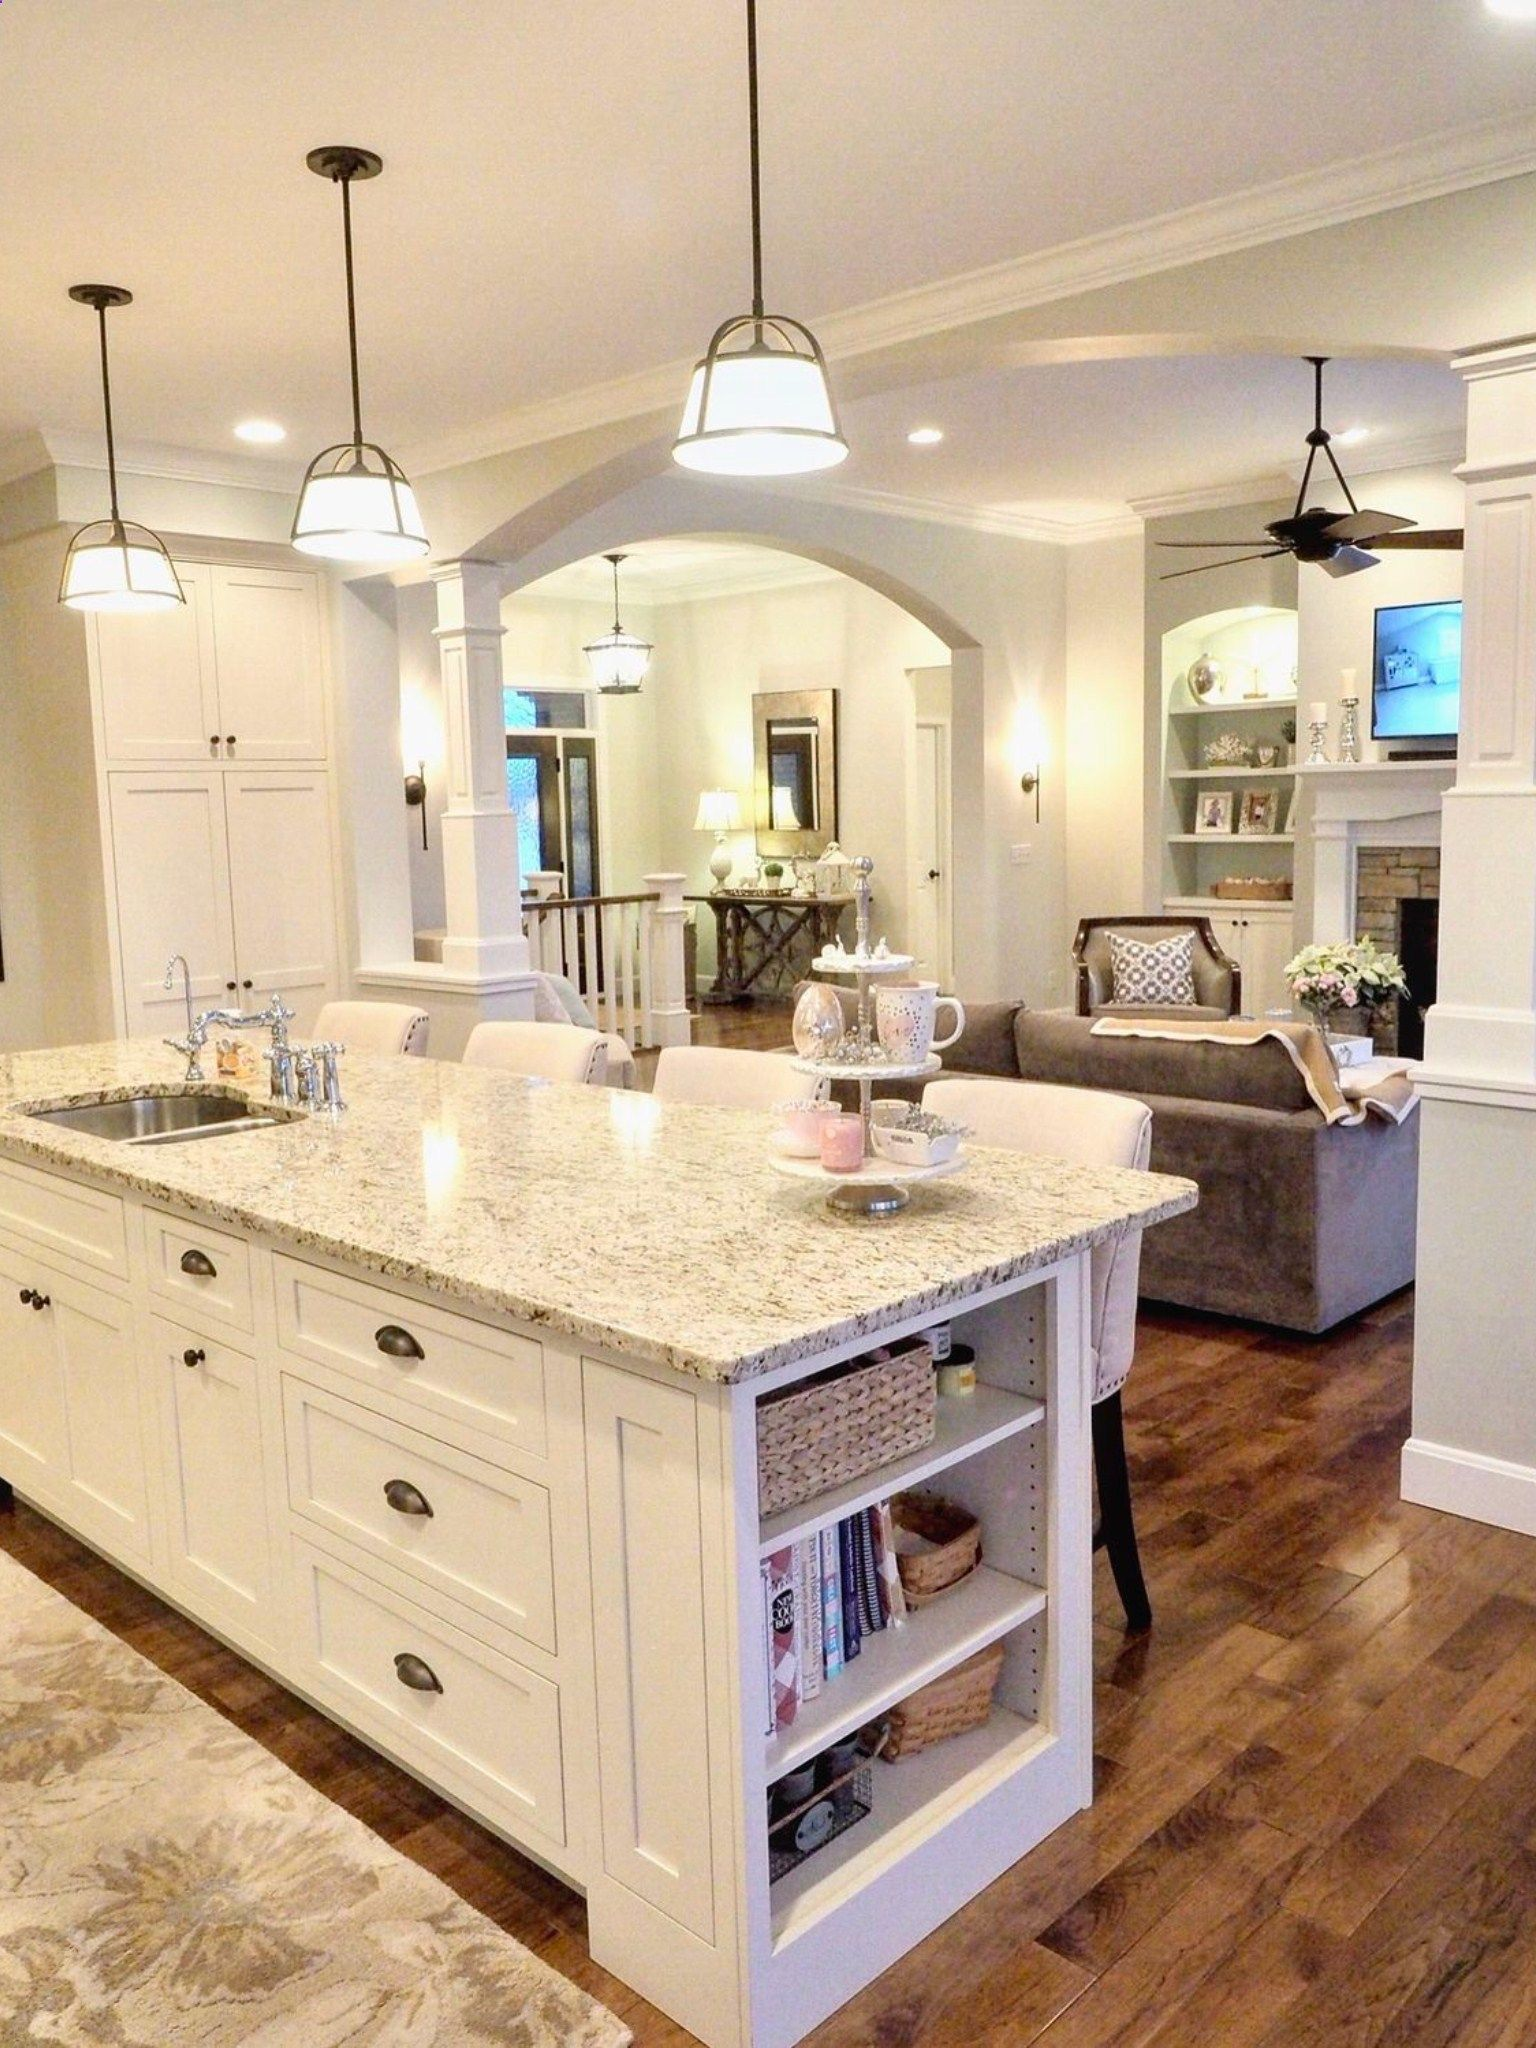 White kitchen offwhite cabinets sherwin williams conservative